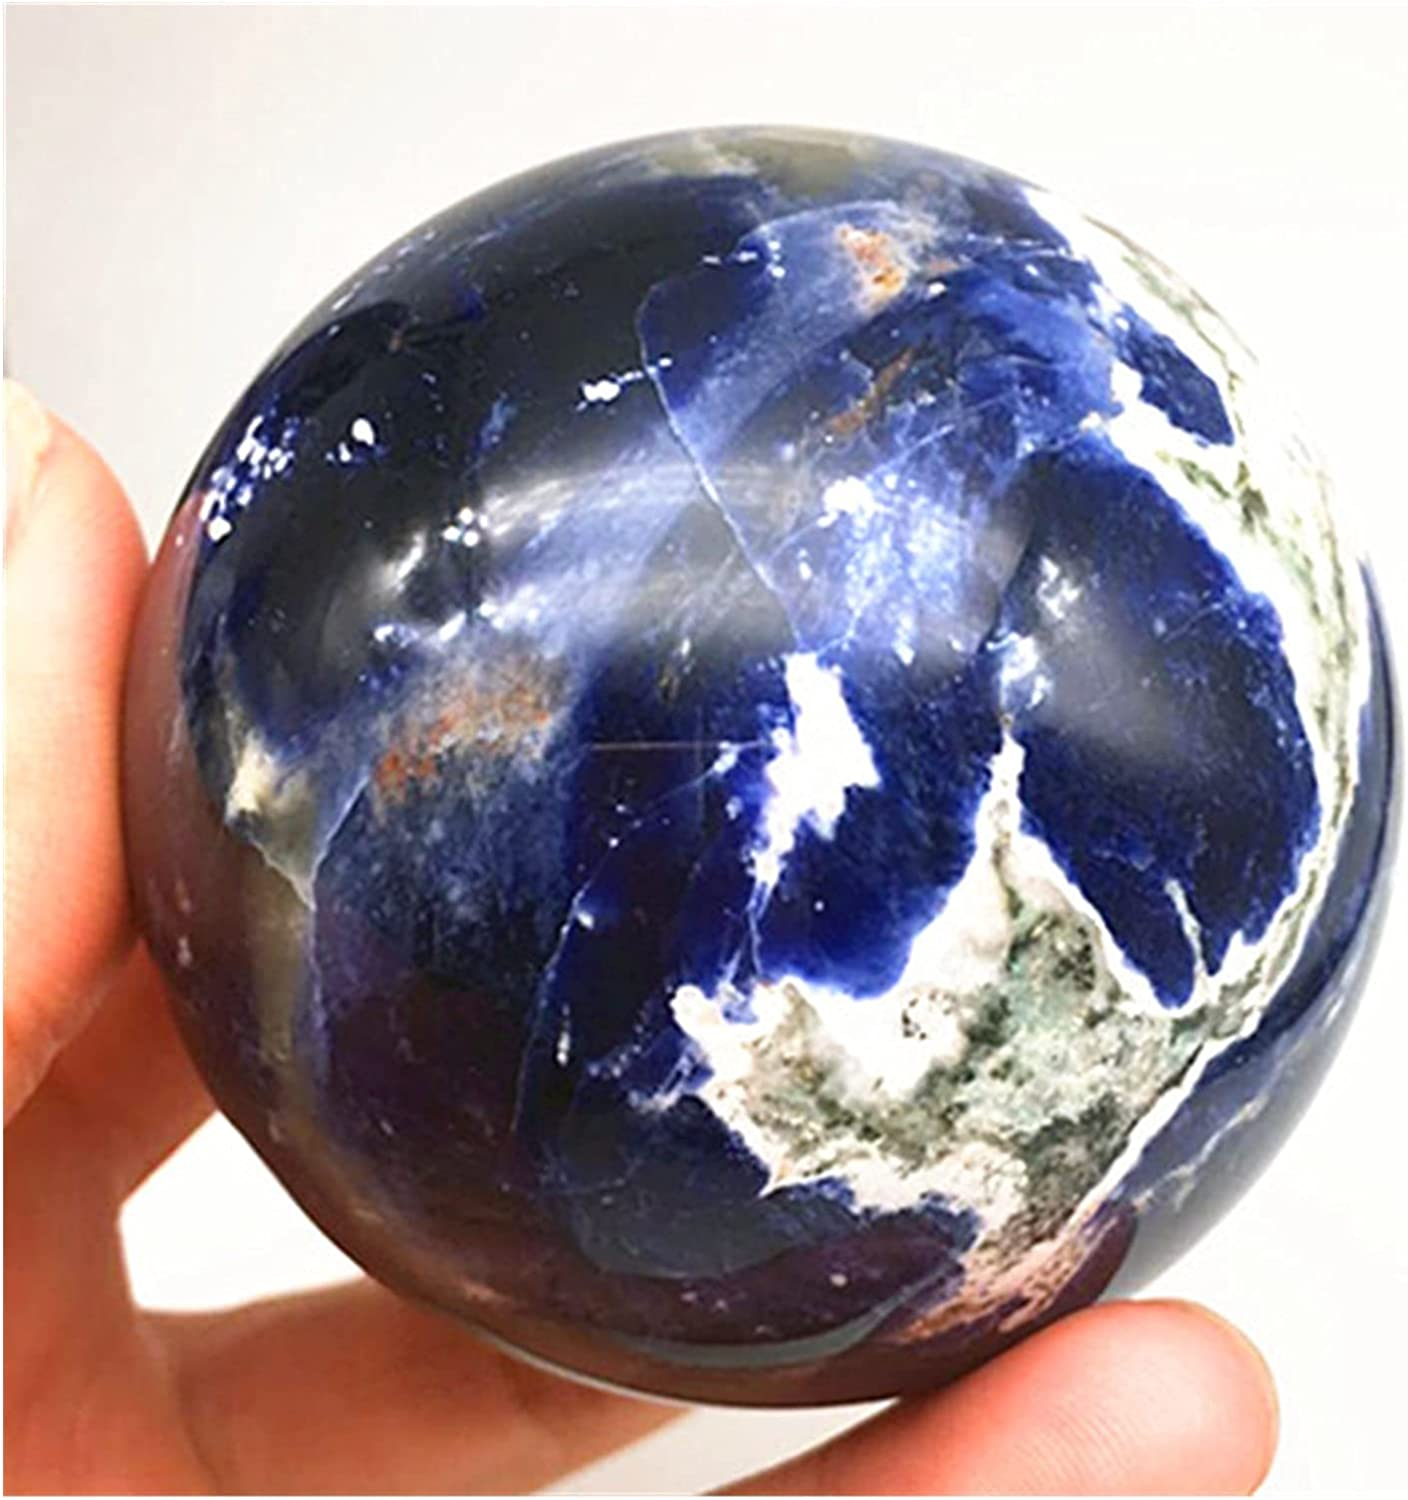 ZHBO Natural Blue Luxury Sodalite Crystal Popular shop is the lowest price challenge Sphere Carving Quartz